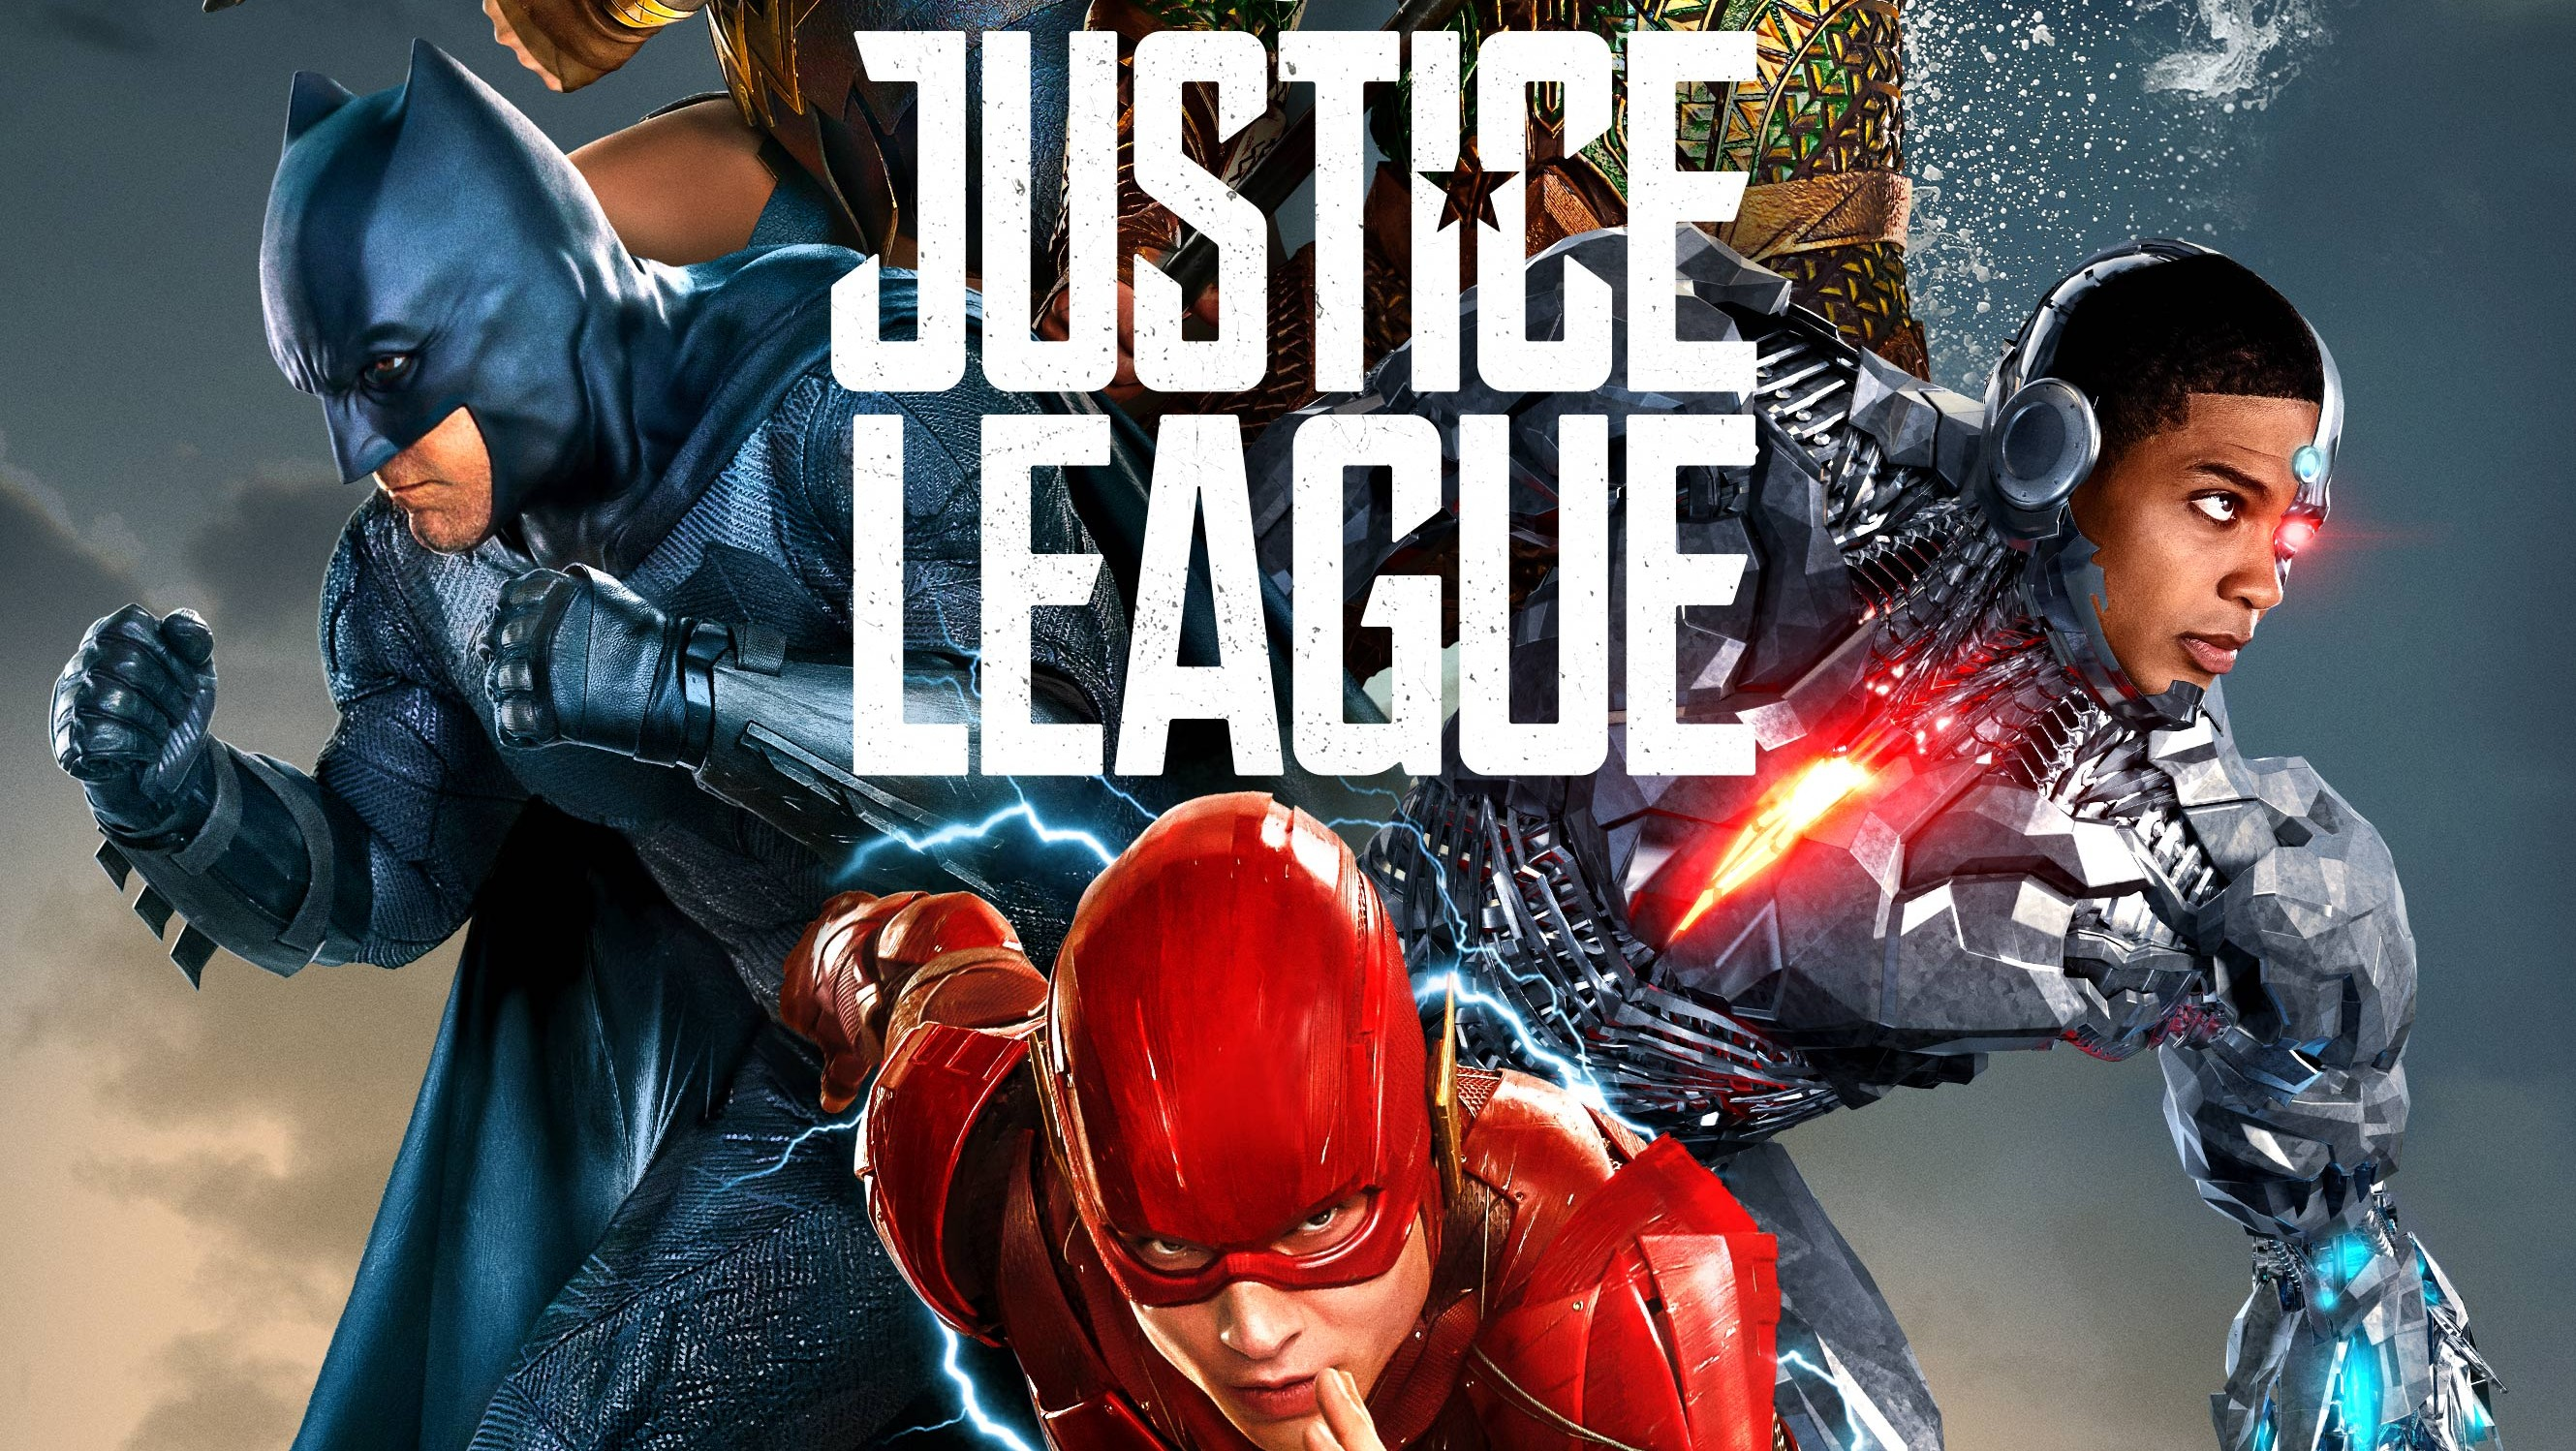 Justice League Poster UK - F